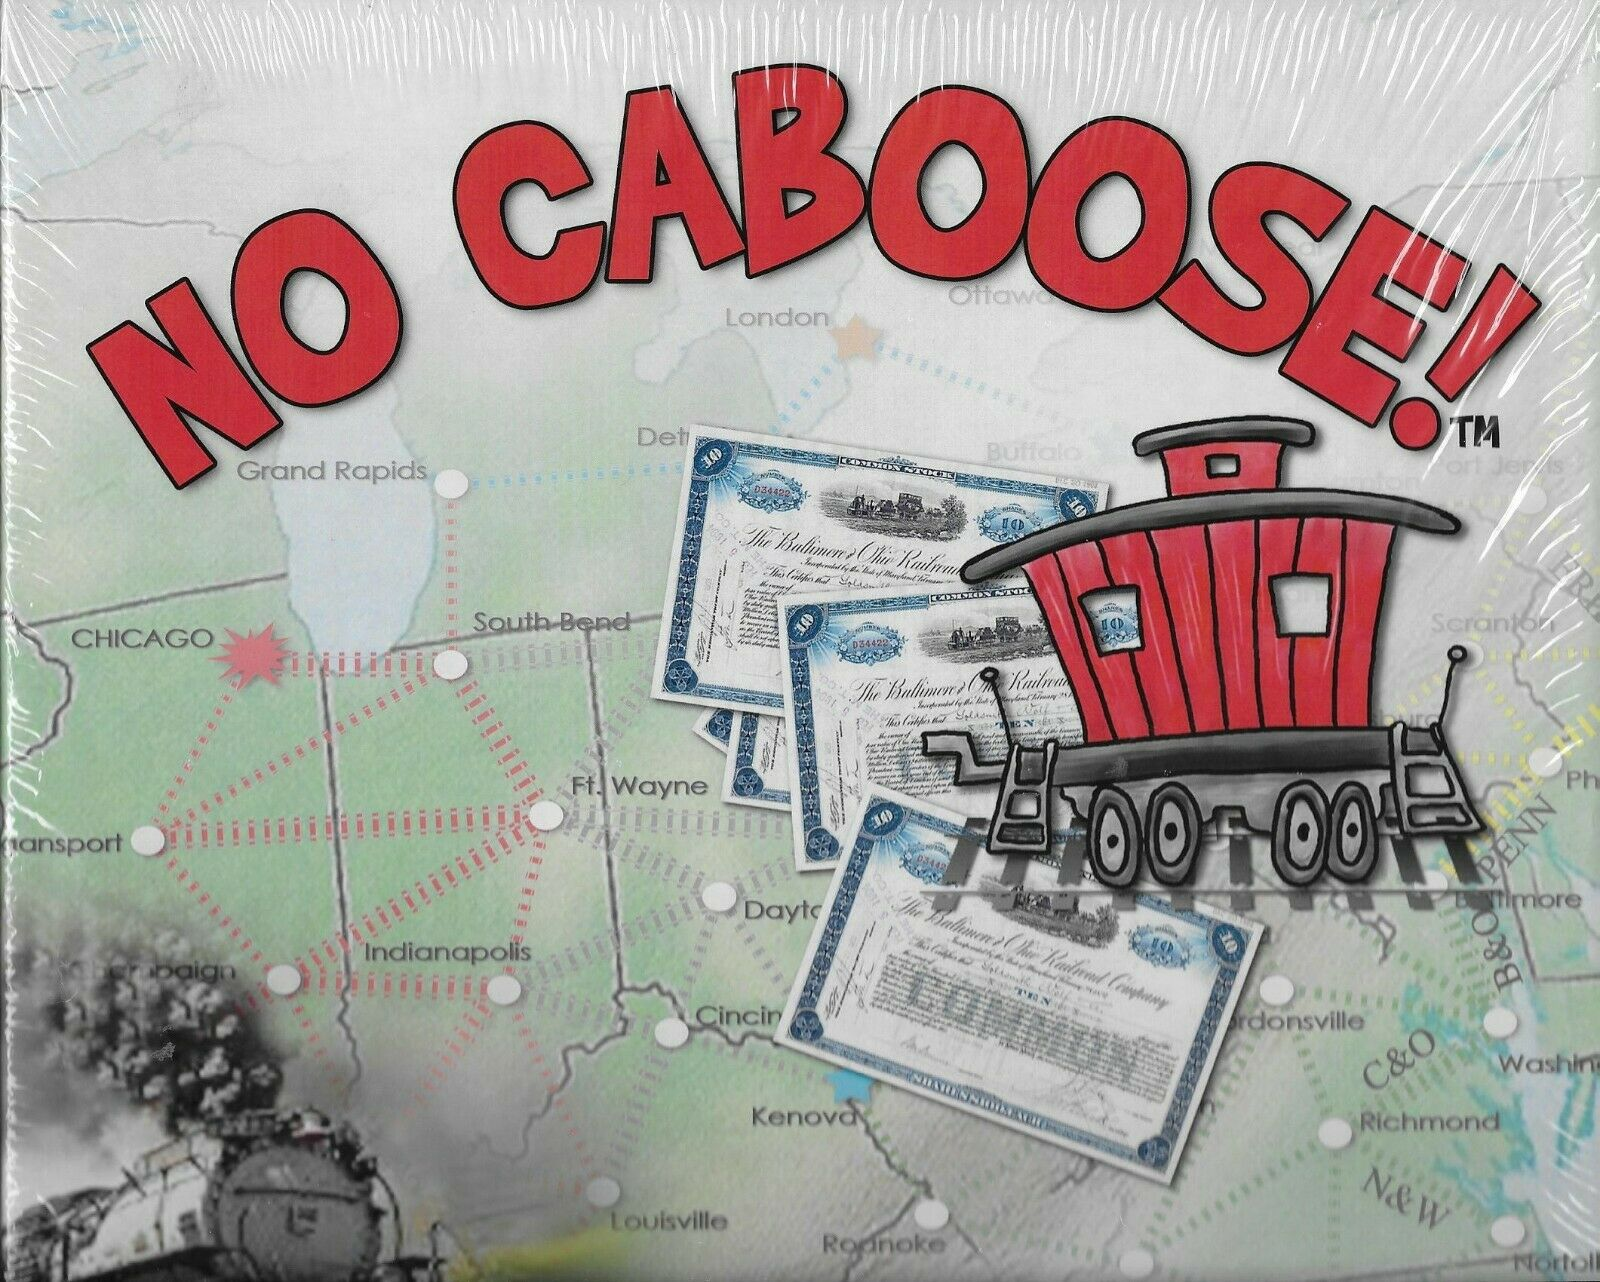 Sealed new in shrink - NO CABOOSE